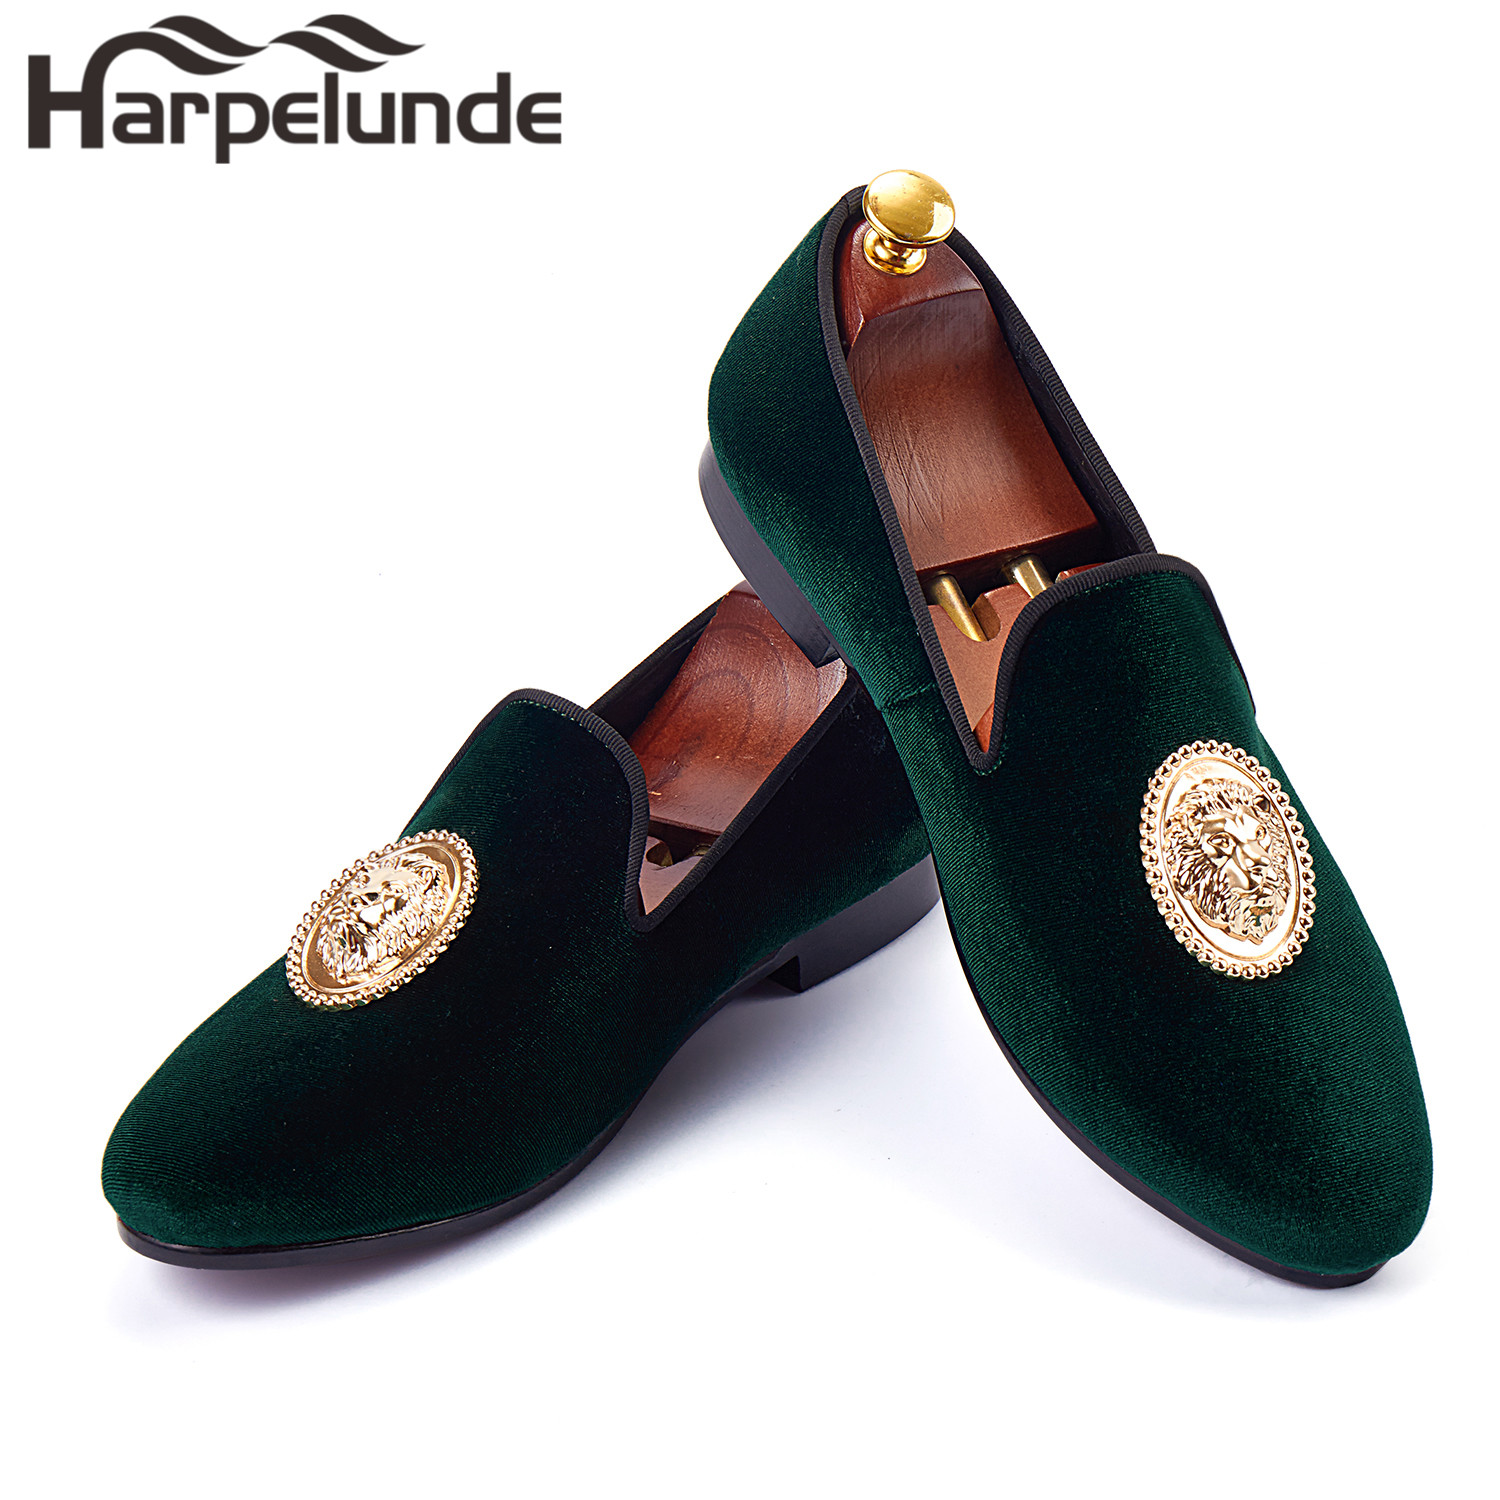 Harpelunde Animal Buckle Men Formal Shoes Green Velvet Loafer Shoes Handmade Smoking Slippers Size 6-14 meotina women boots high heels thigh high boots winter sexy over knee boots ladies autumn shoes black white shoes big size 10 43